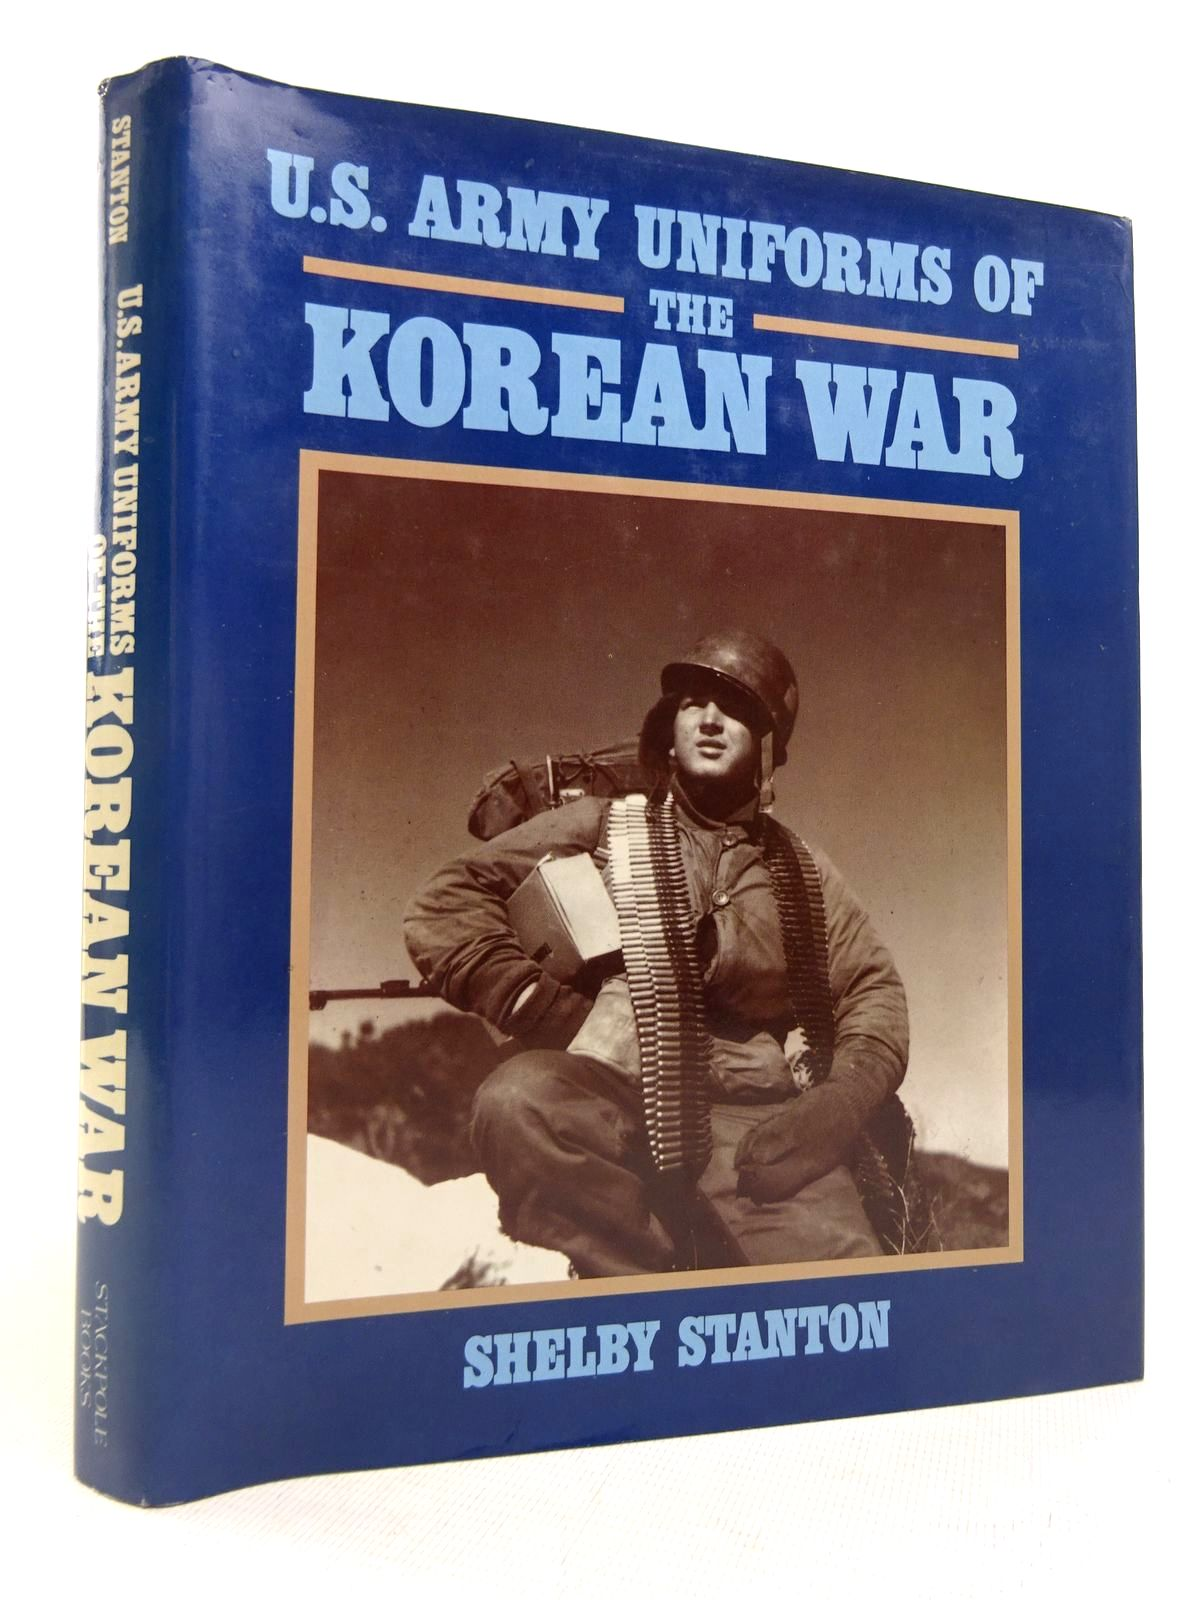 Photo of U.S. ARMY UNIFORMS OF THE KOREAN WAR written by Stanton, Shelby published by Stackpole Books (STOCK CODE: 1816855)  for sale by Stella & Rose's Books